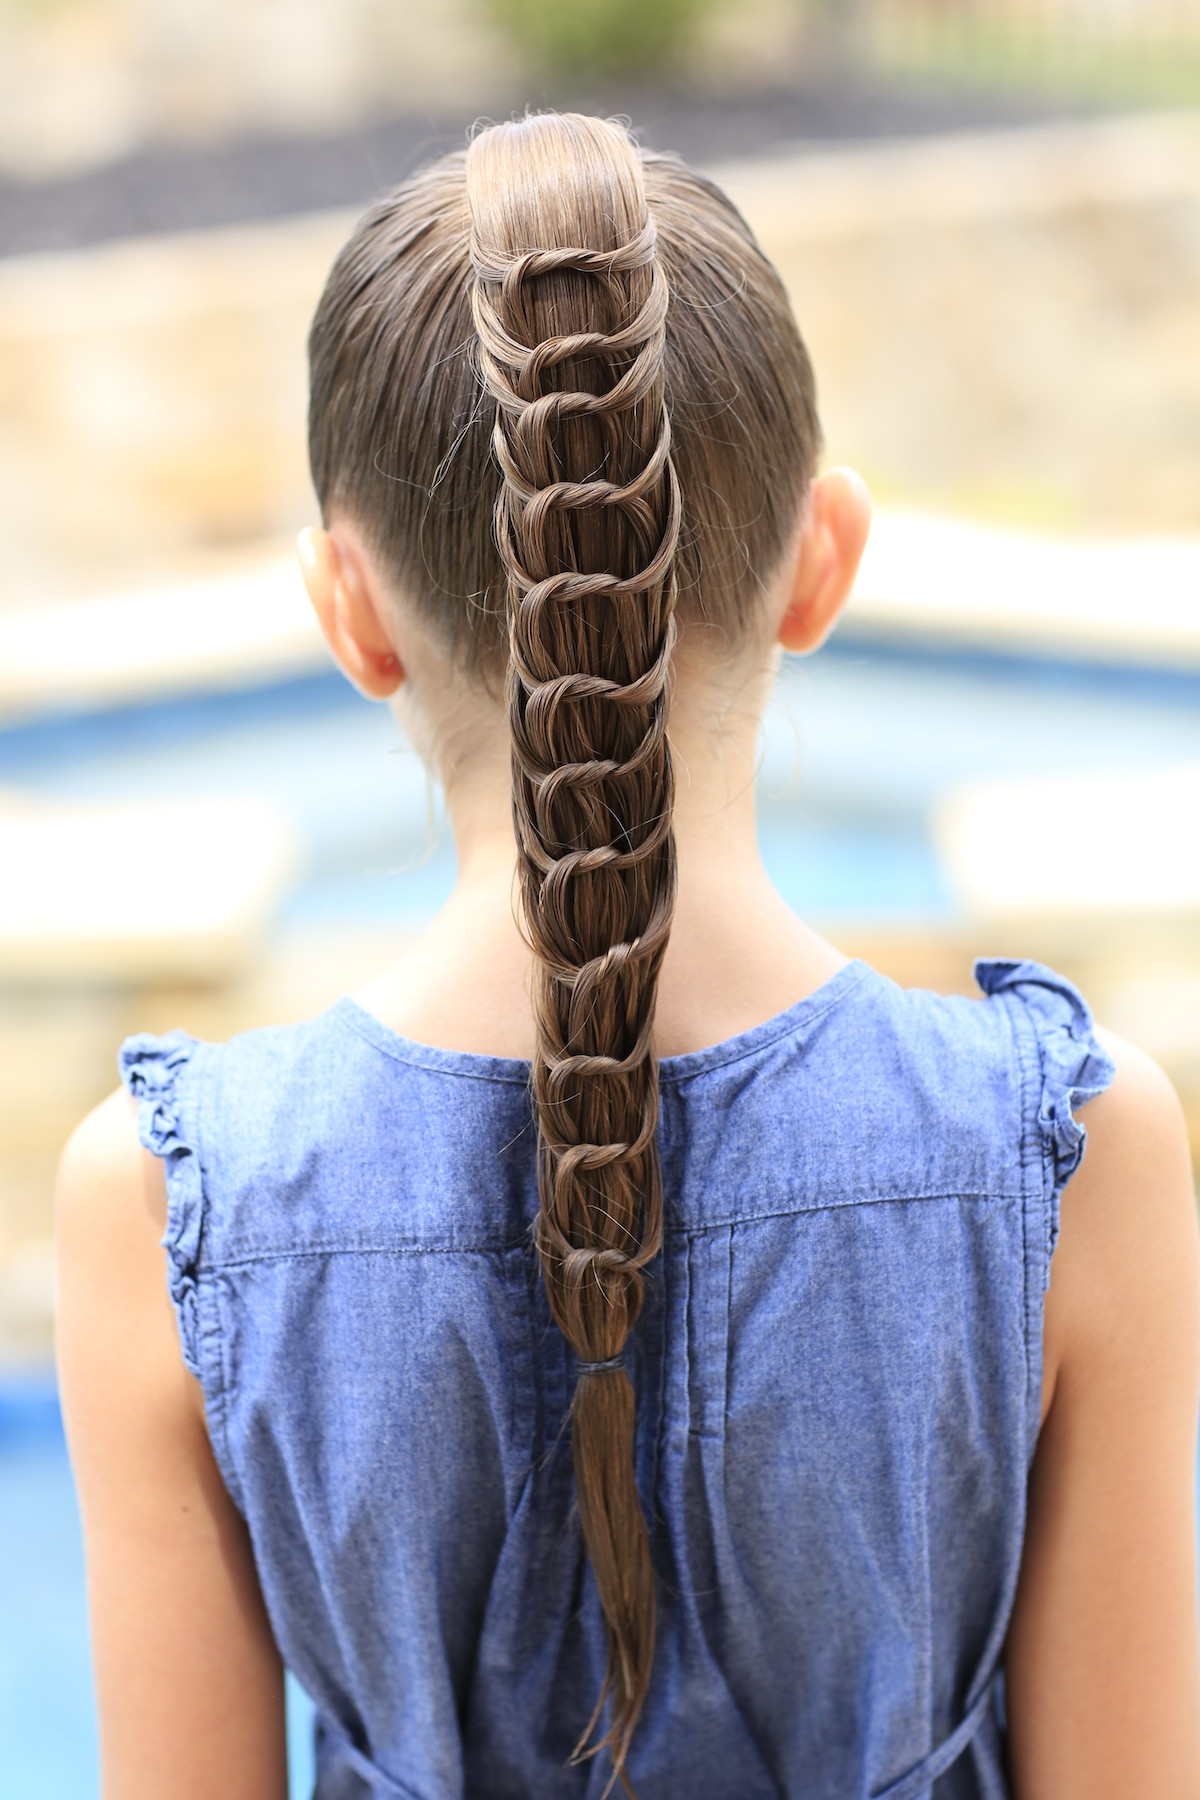 Best ideas about Cute Hairstyles . Save or Pin 20 Cute Hairstyles For Girls and Women MagMent Now.